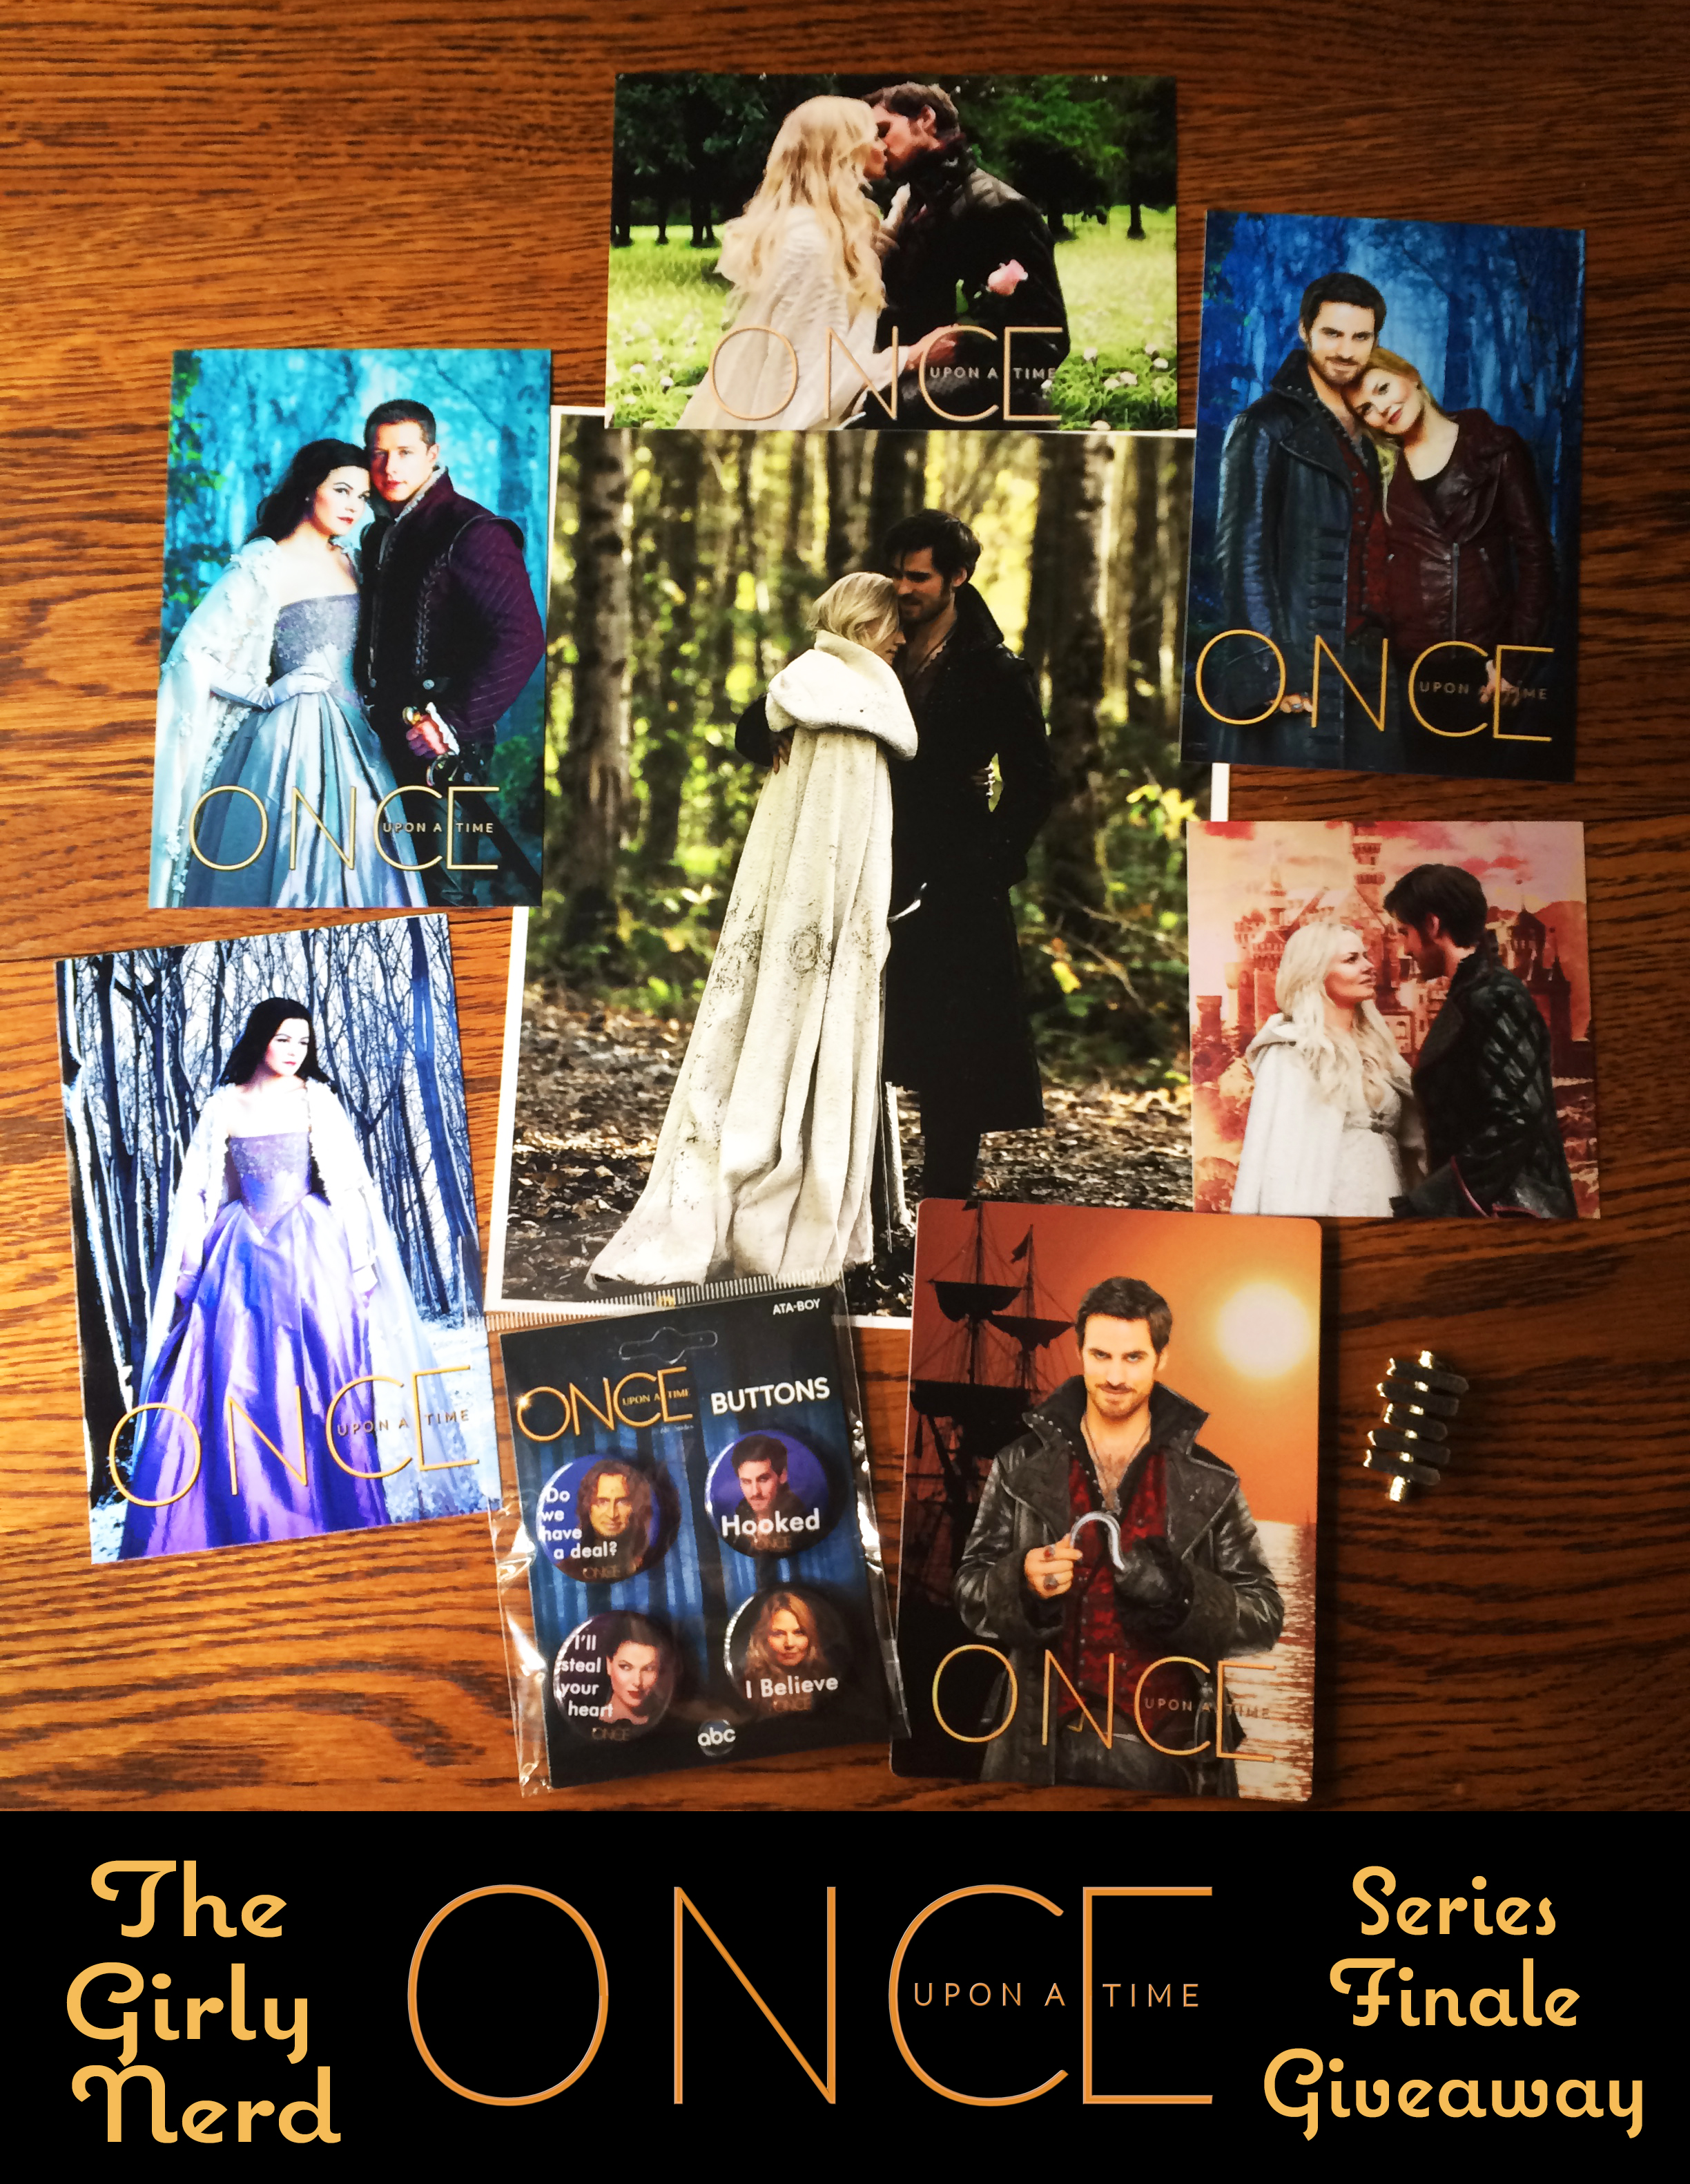 Once Upon a Time: Series Finale Giveaway